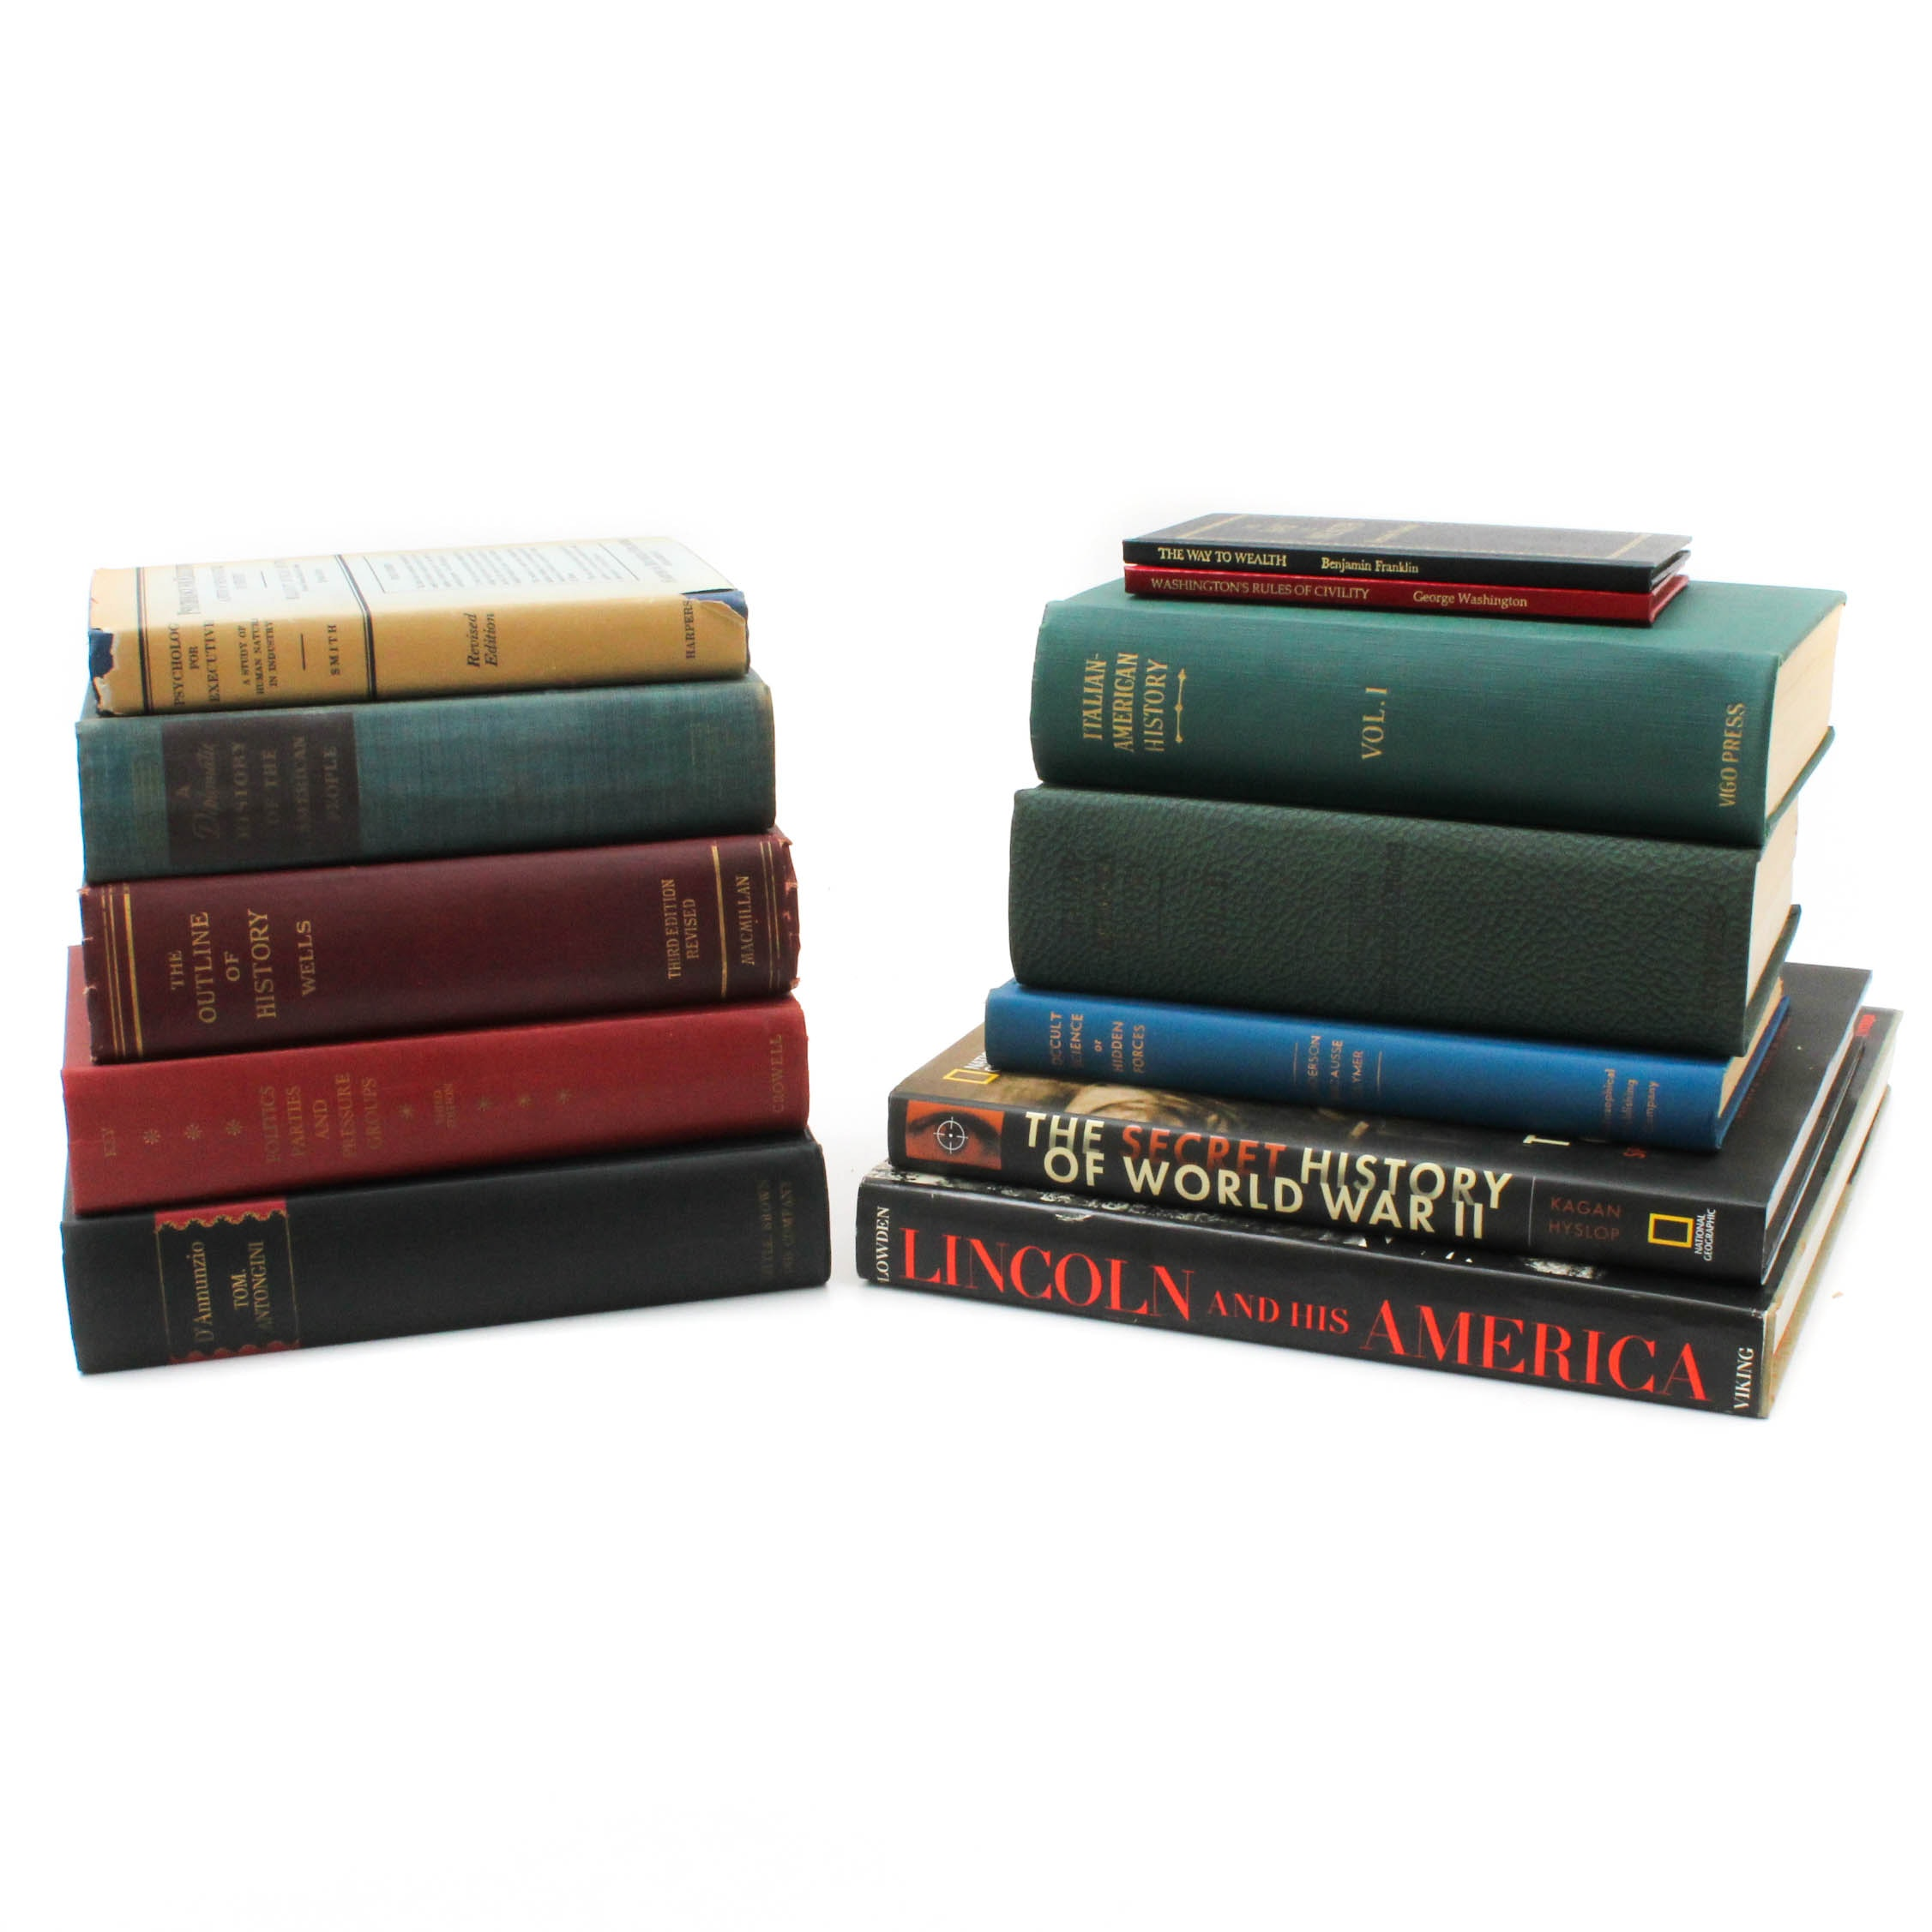 Vintage History and Non-Fiction Books